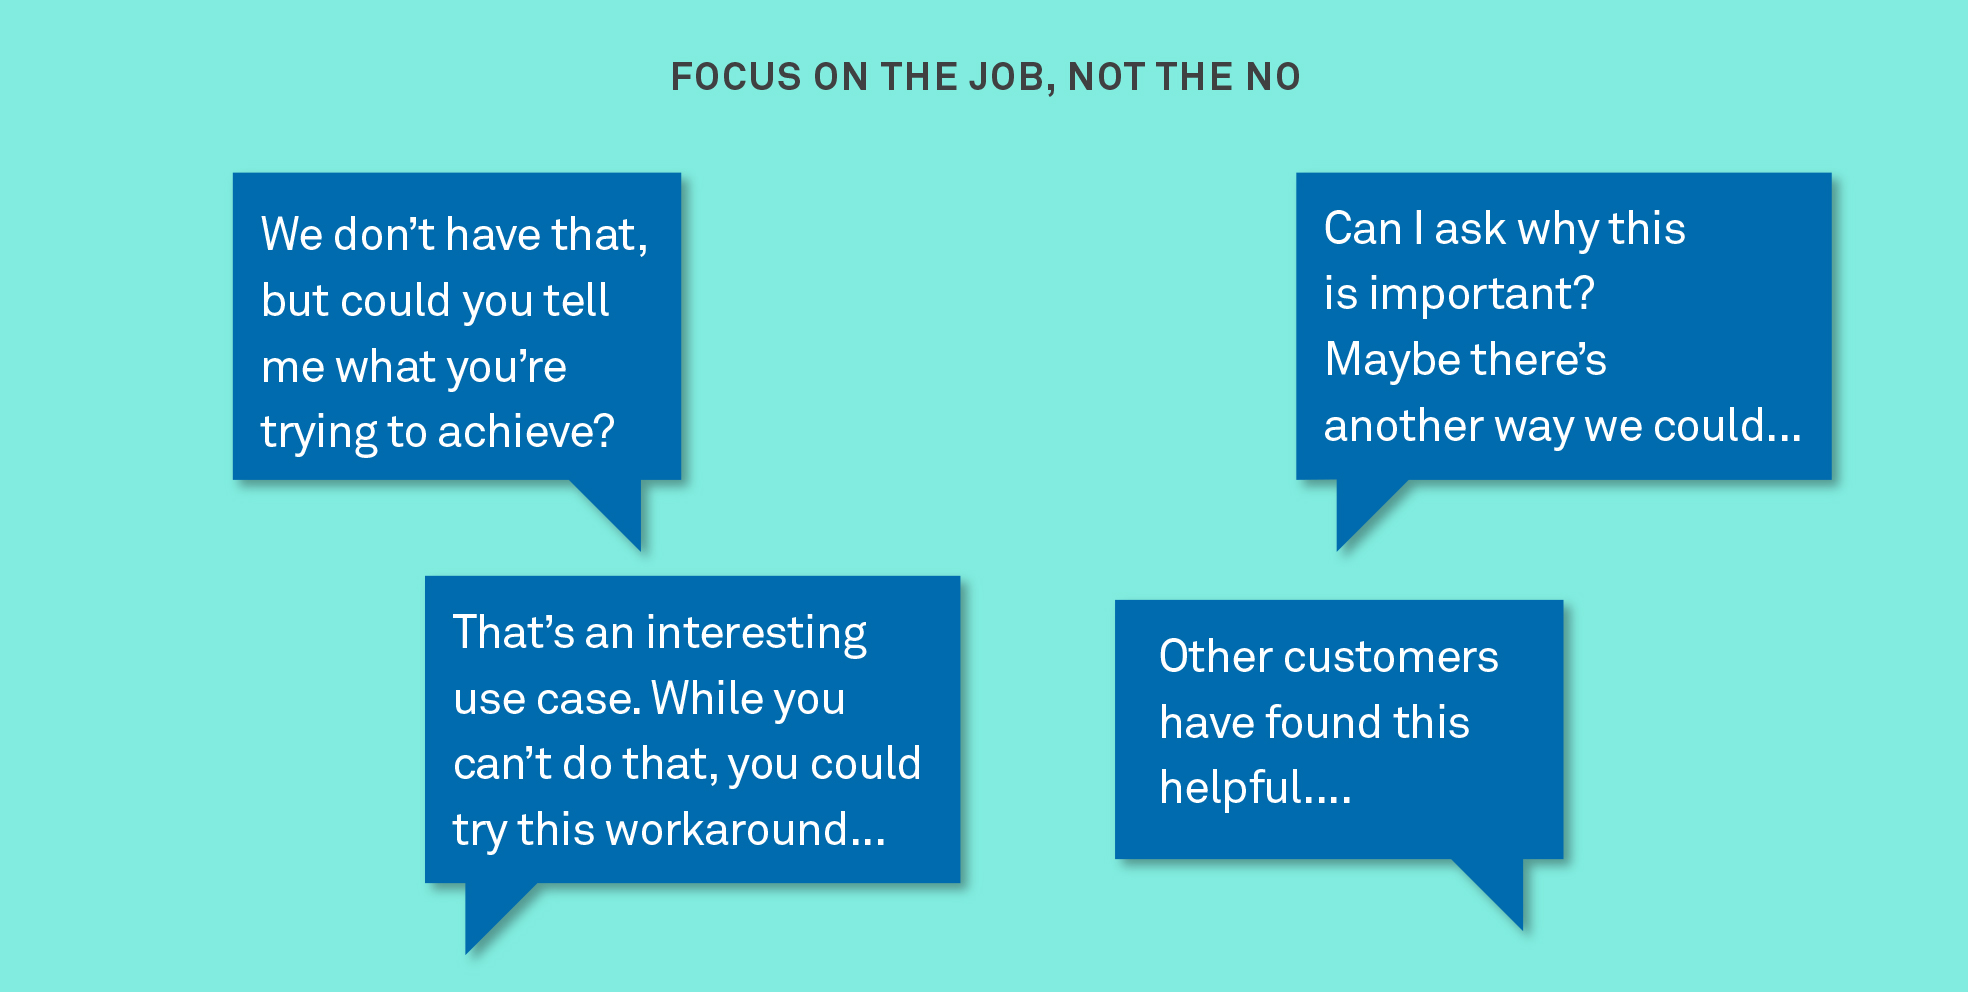 Focus on the job, not the no